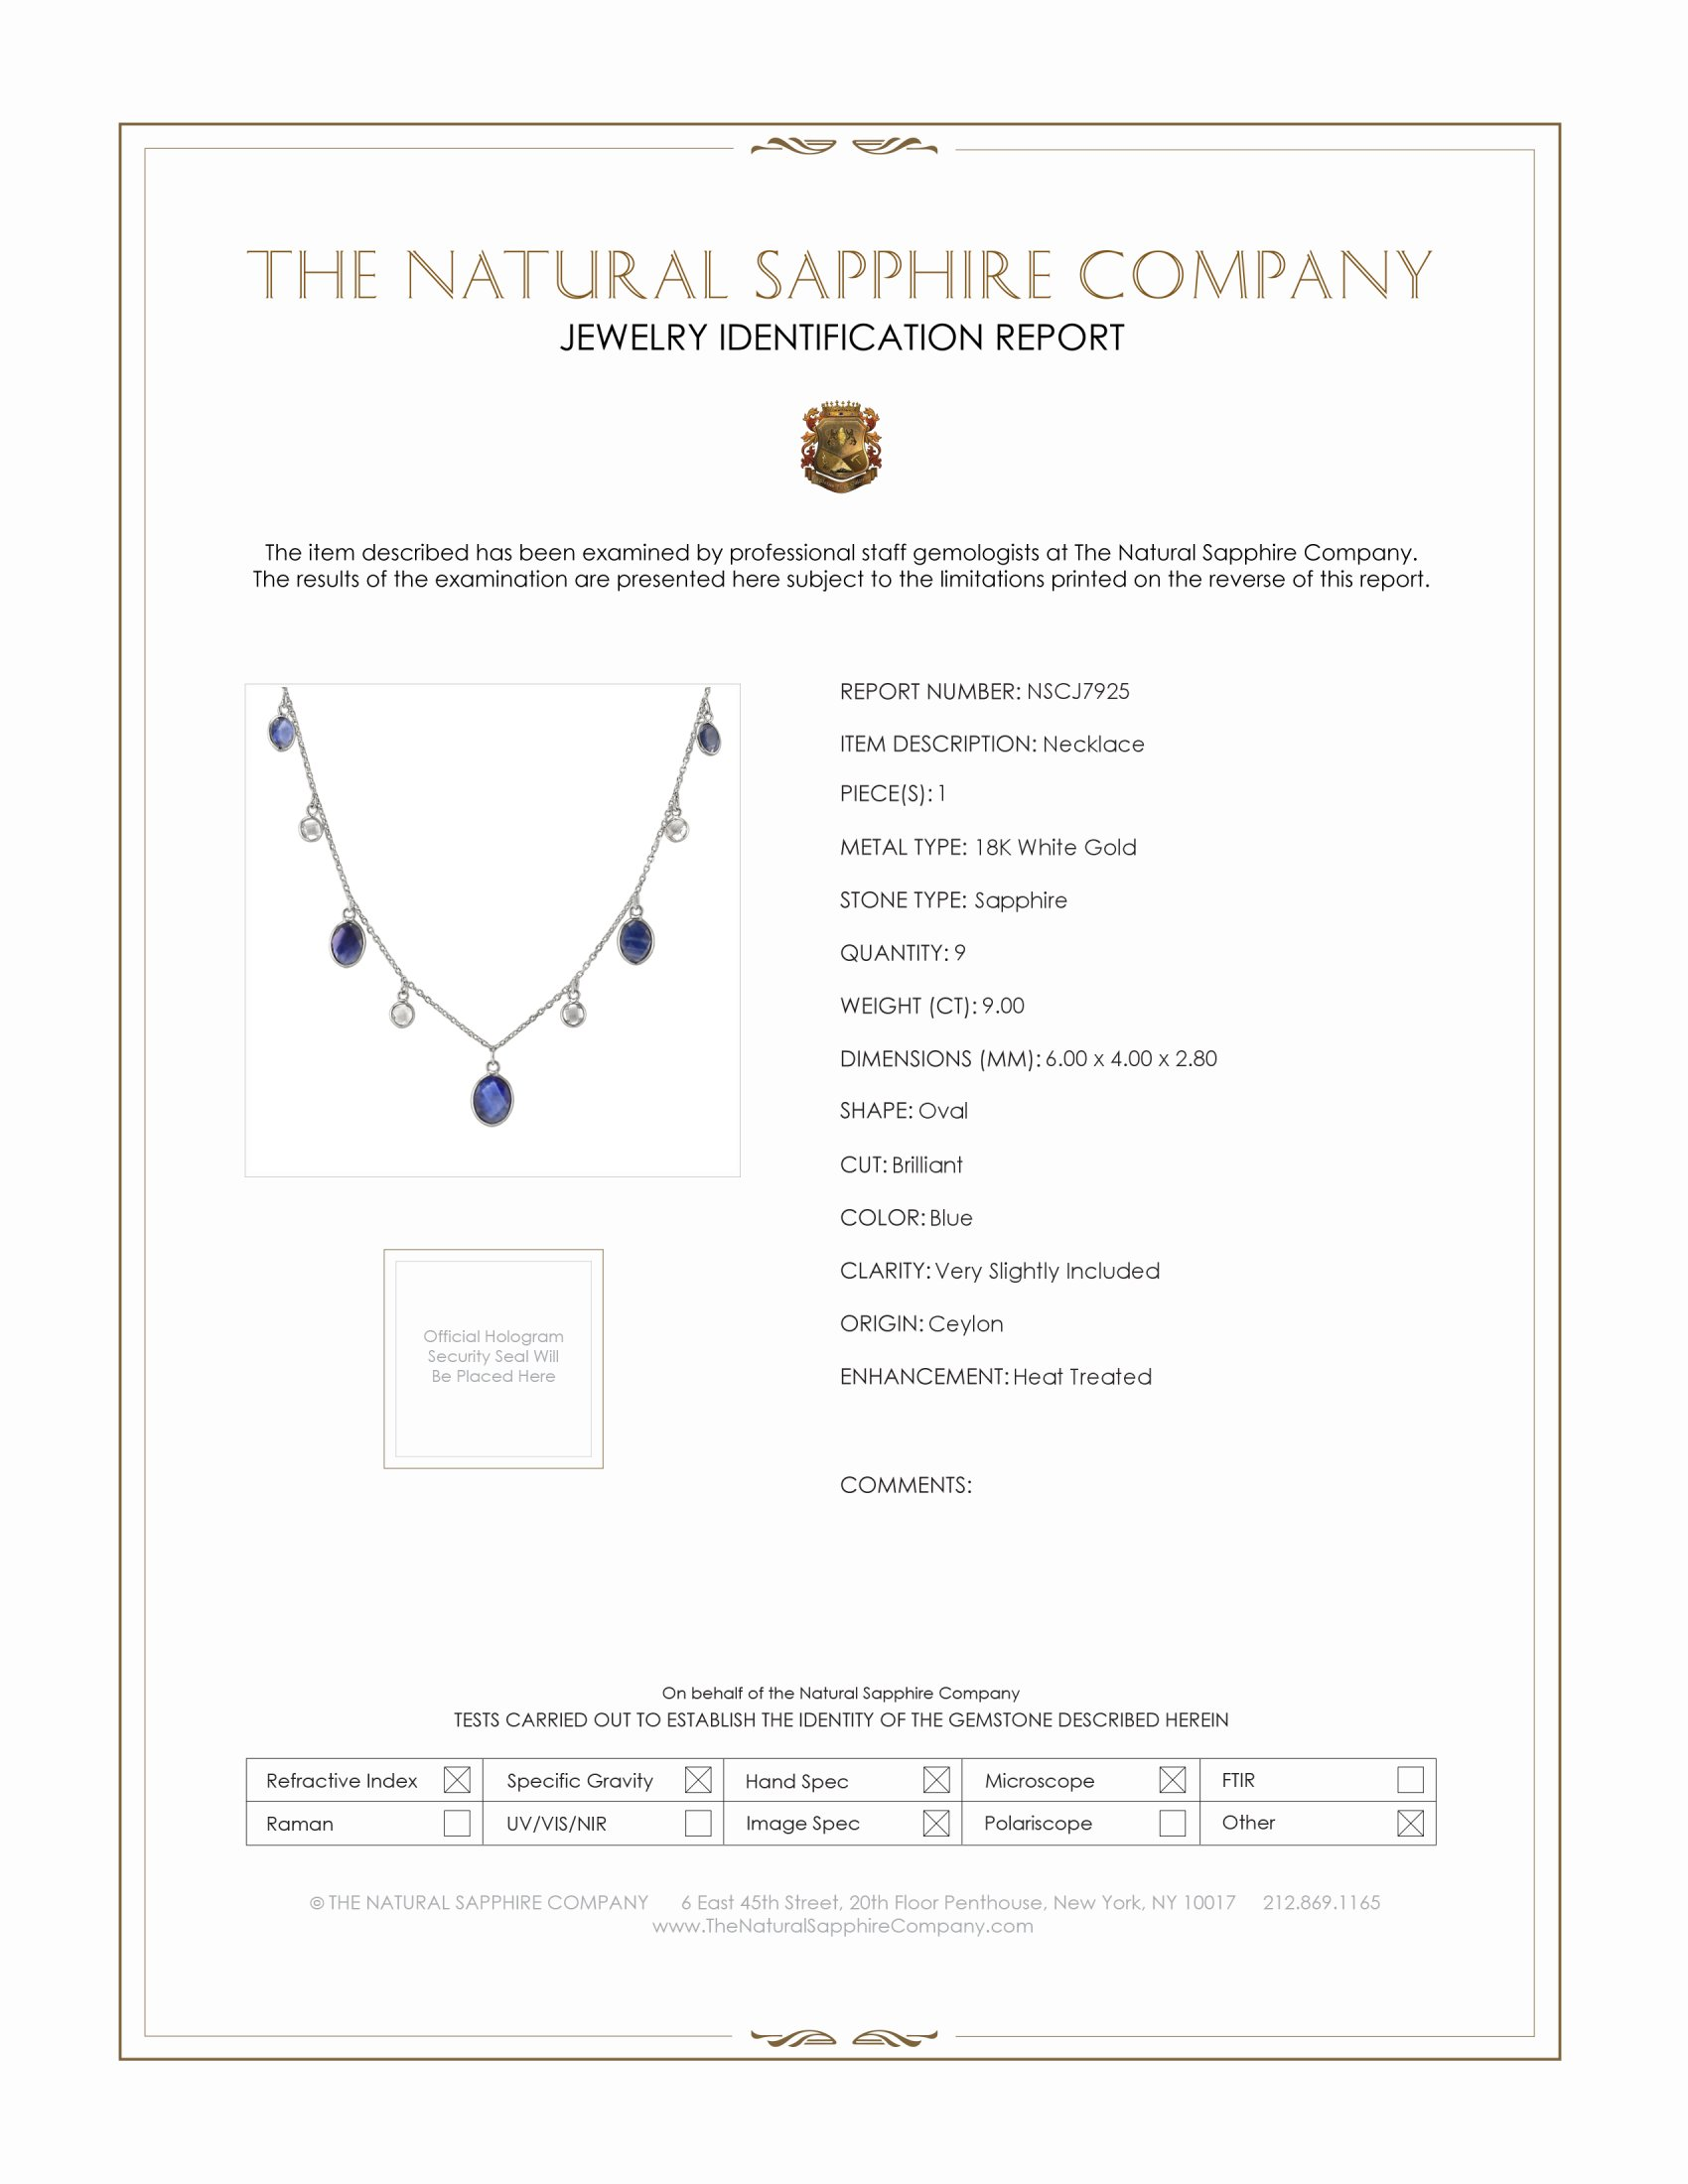 9.00ct Blue Sapphire Necklace Certification